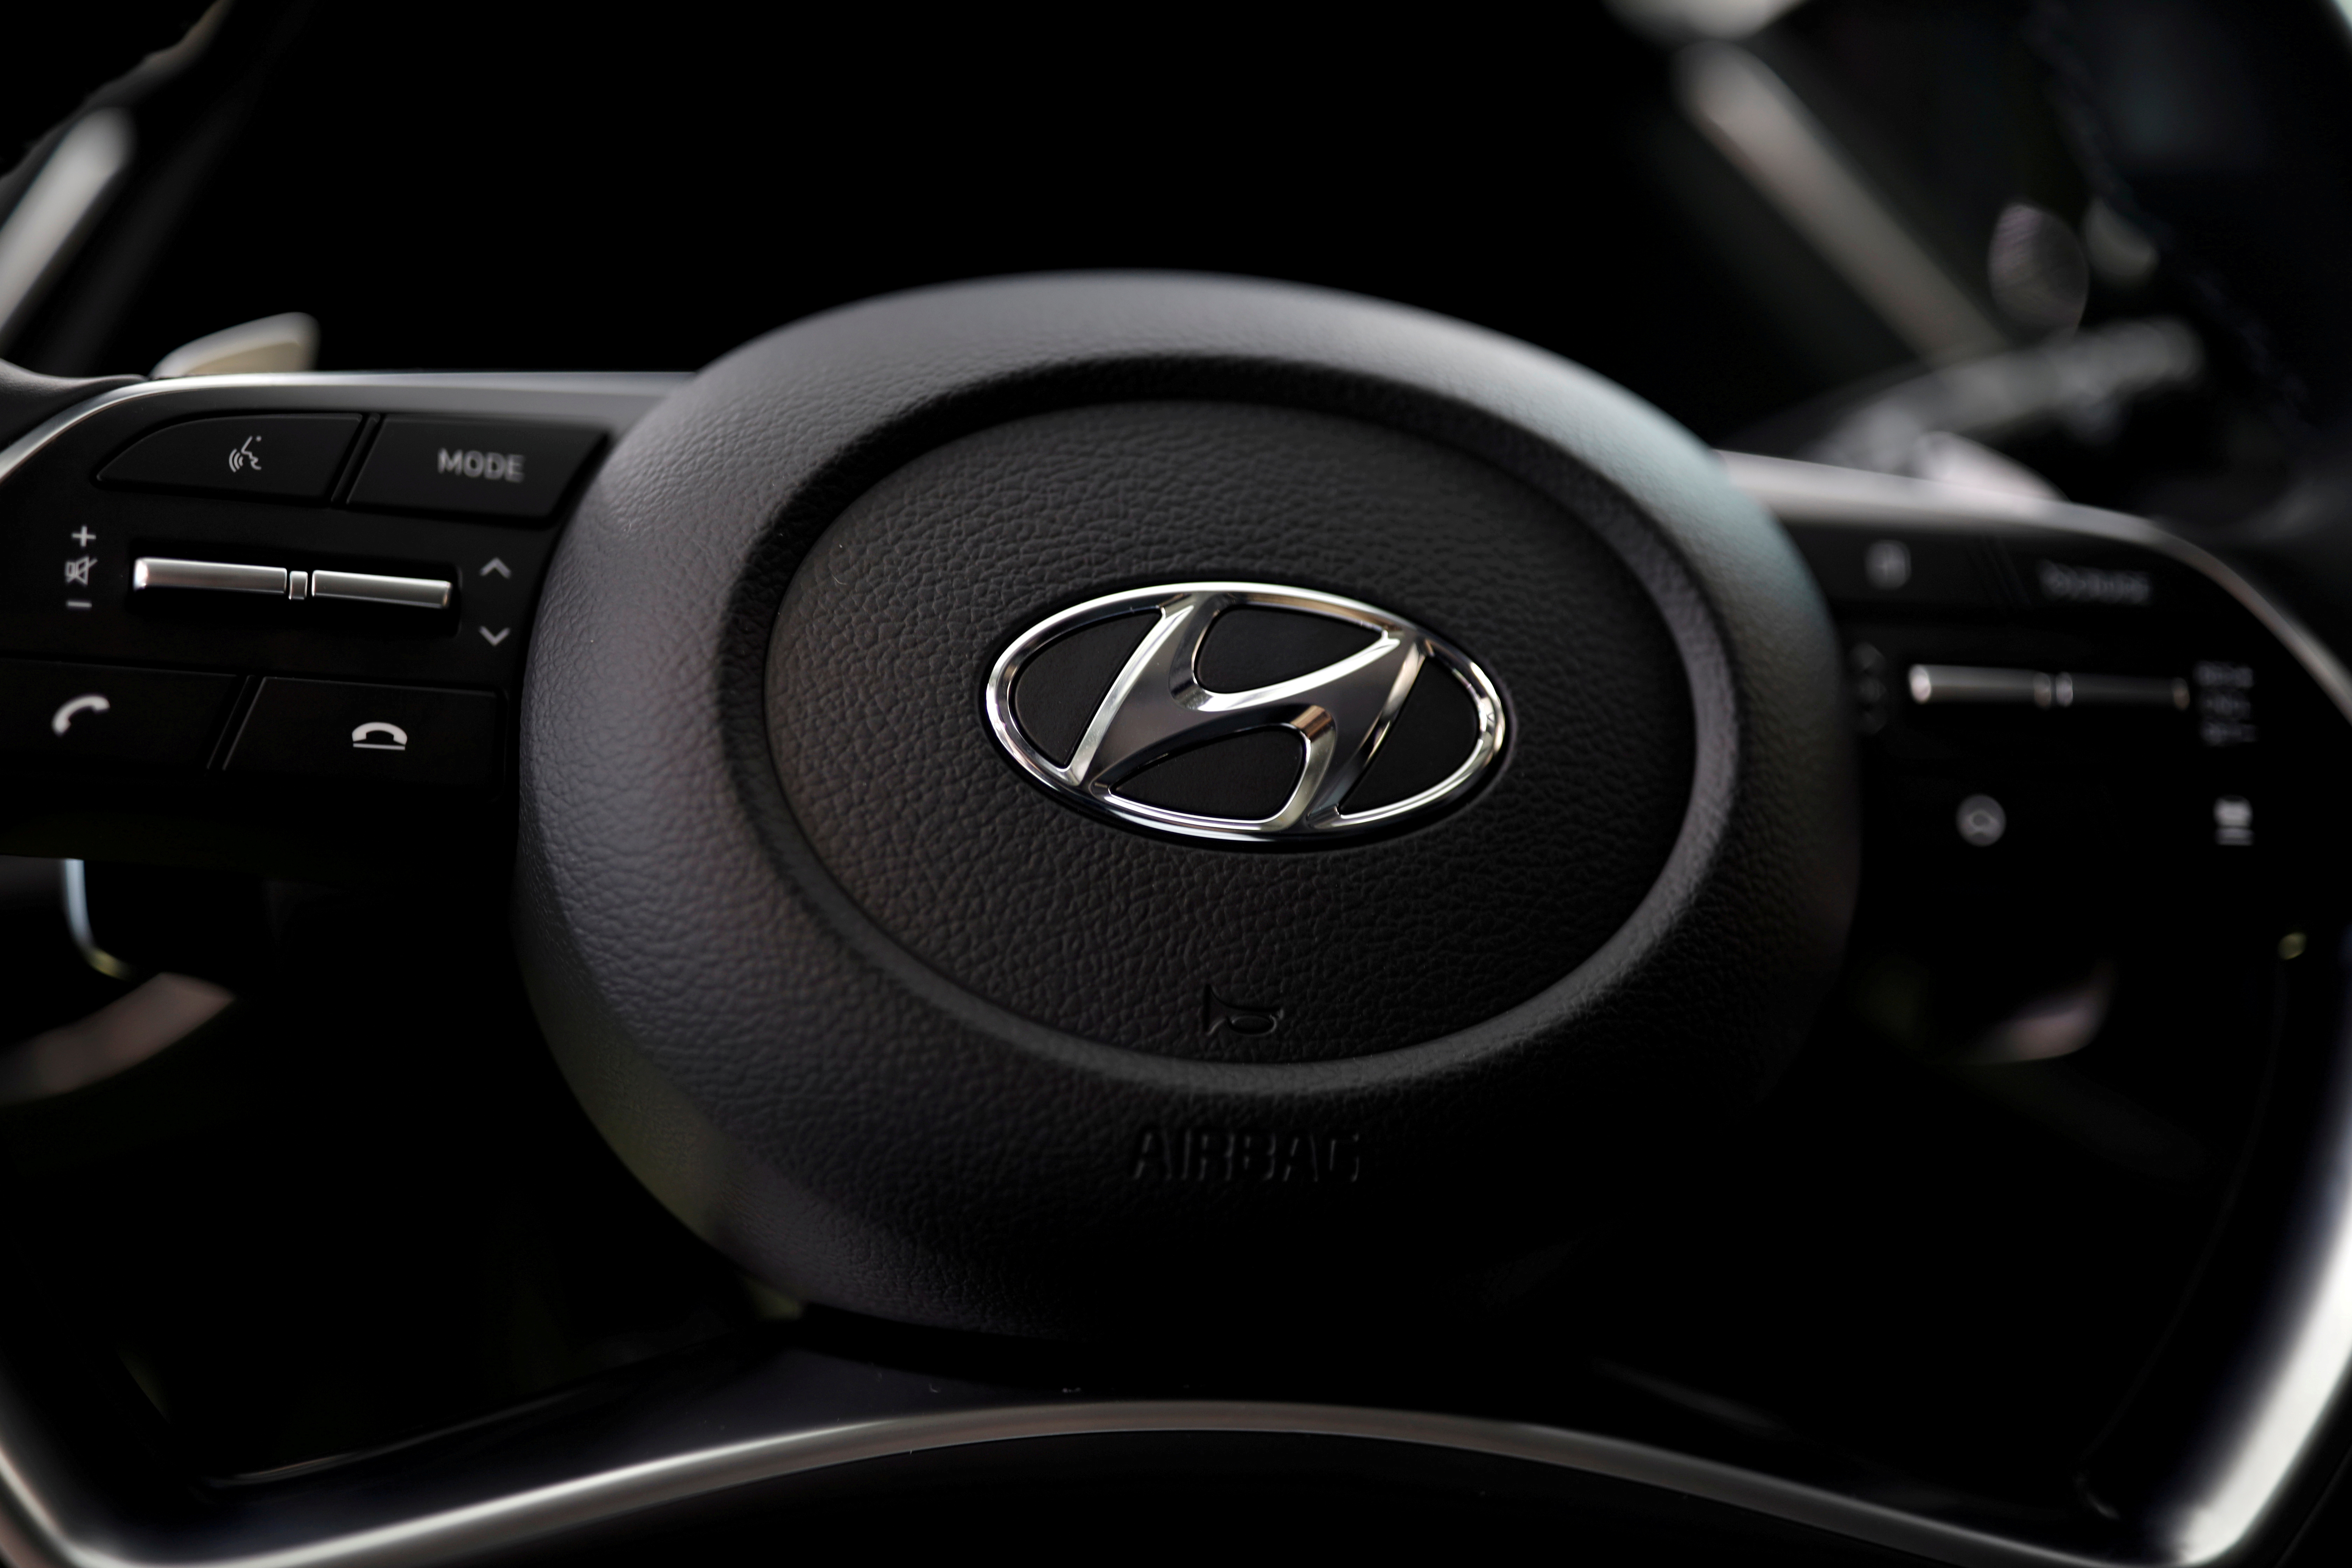 The logo of Hyundai Motors is seen on a steering wheel on display at the company's headquarters in Seoul, South Korea, March 22, 2019. REUTERS/Kim Hong-Ji